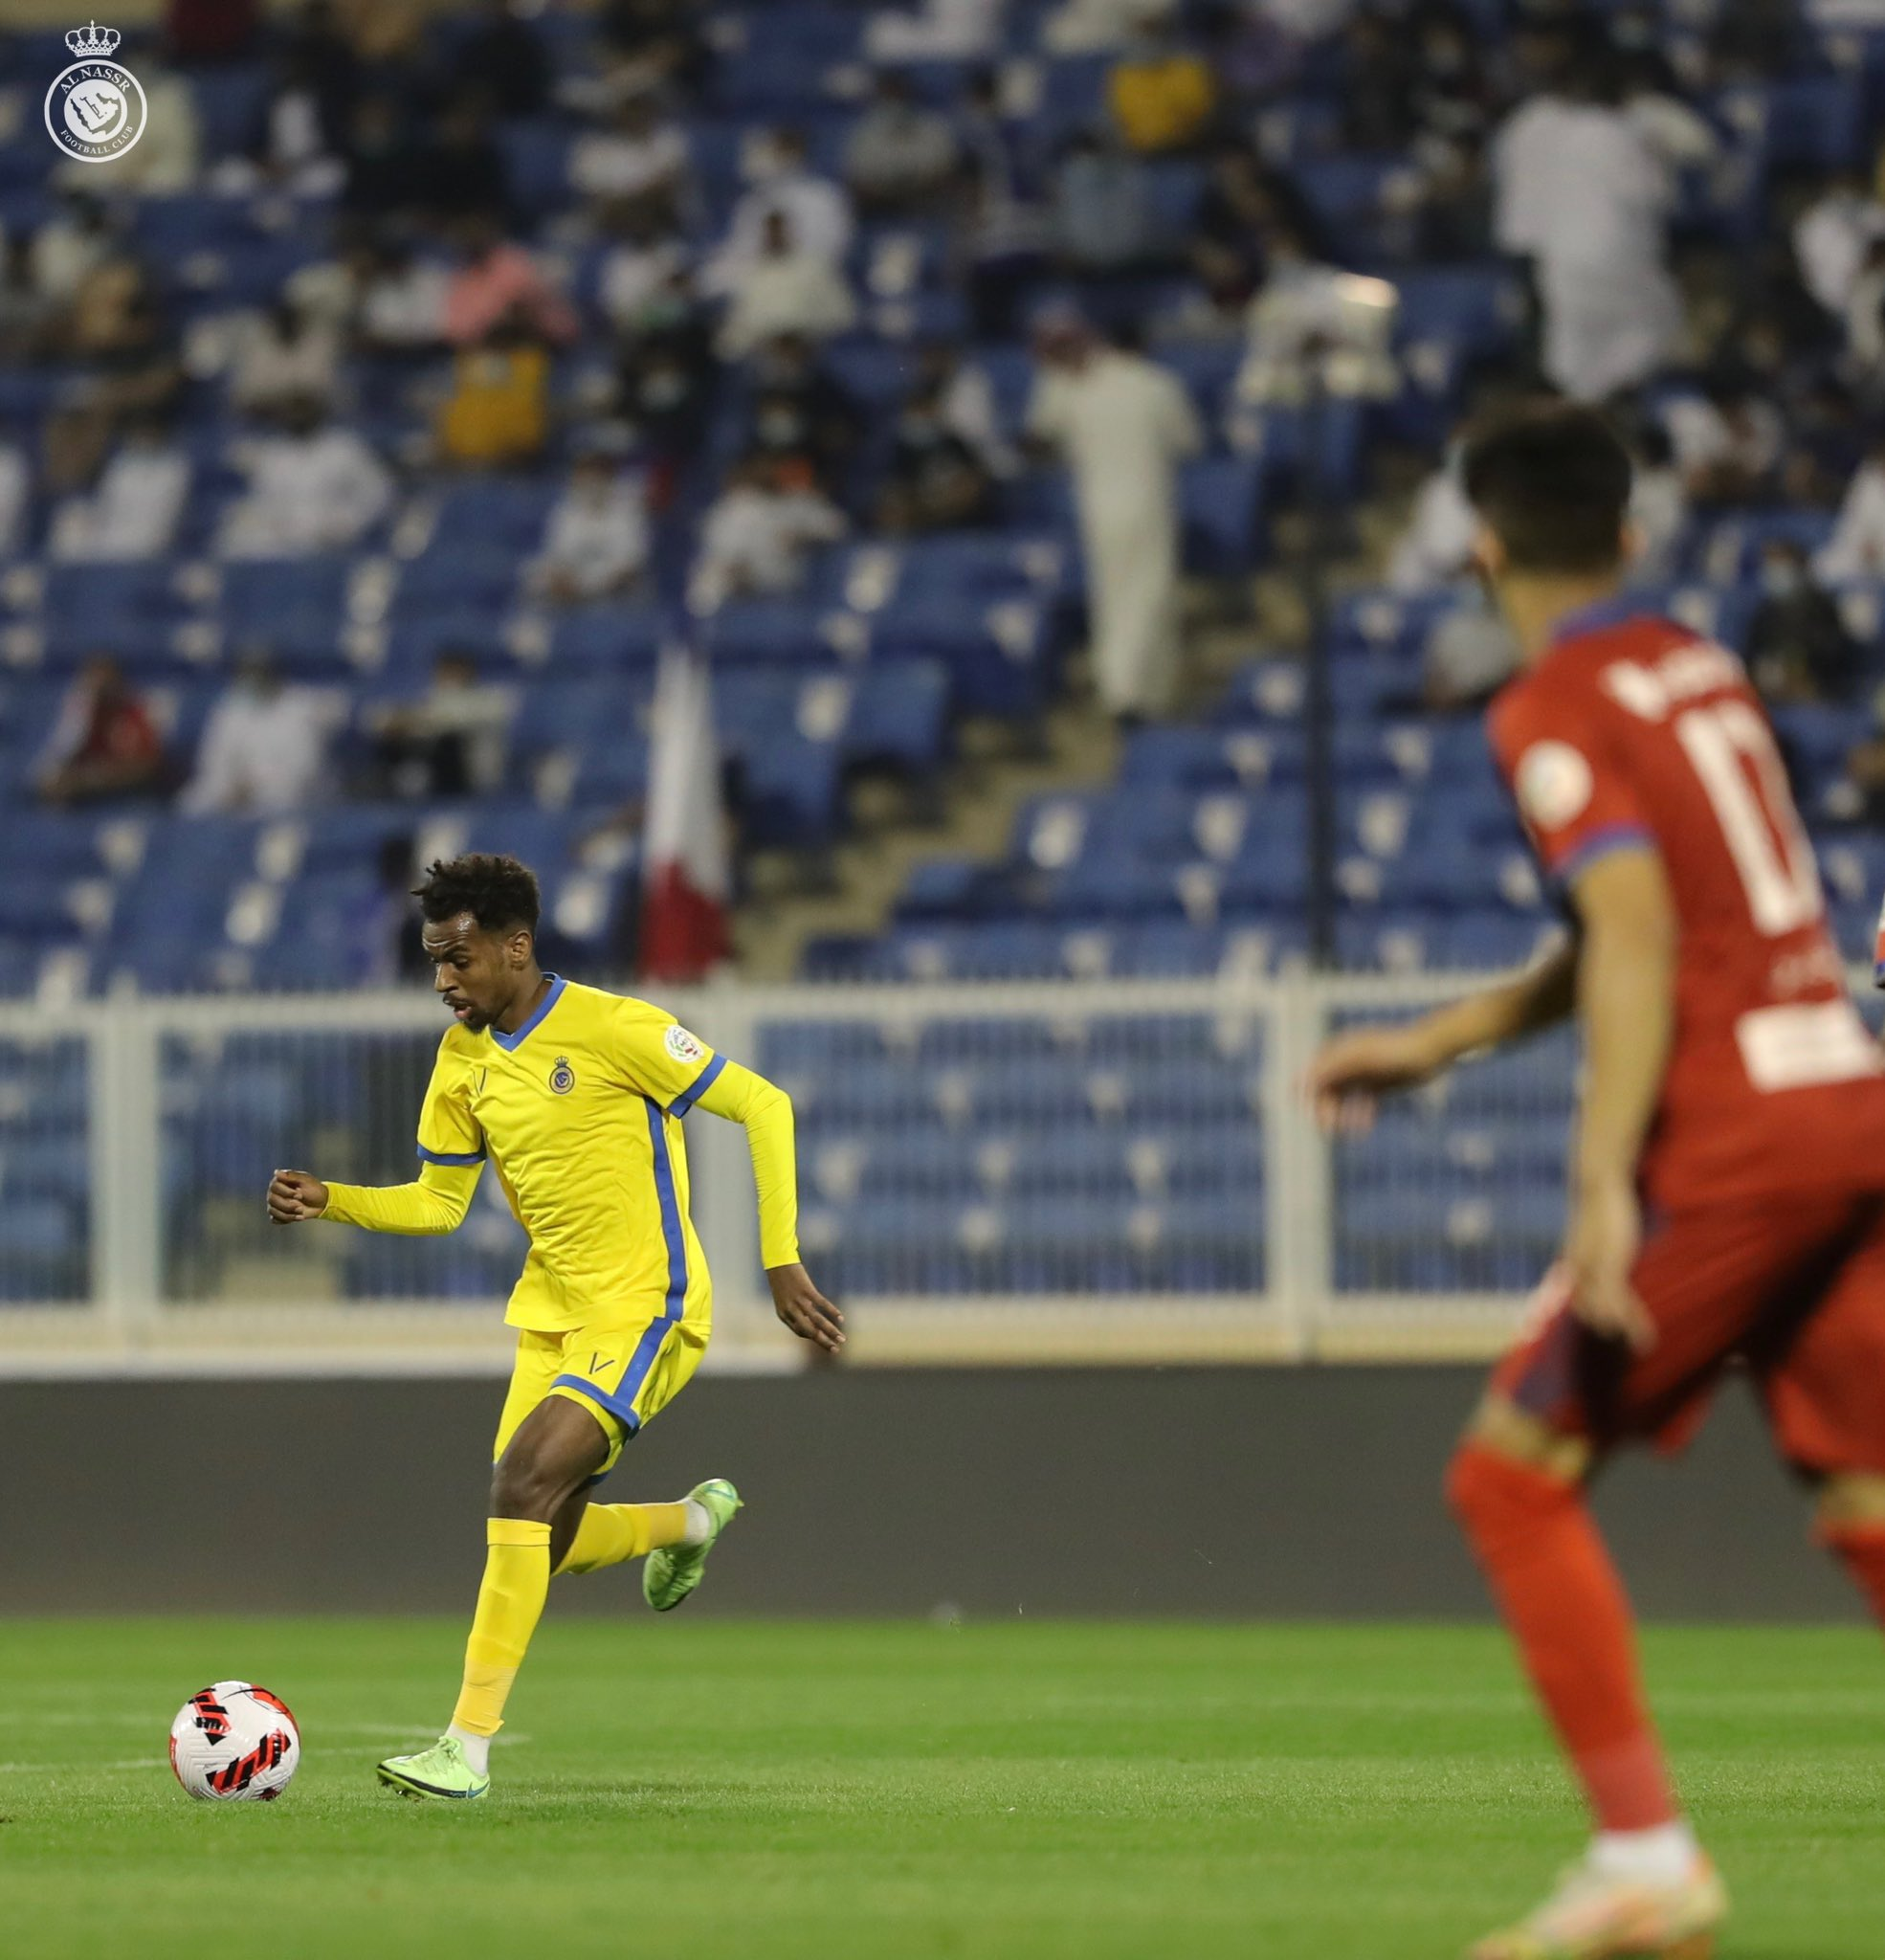 Nadia in the victory match against Abha